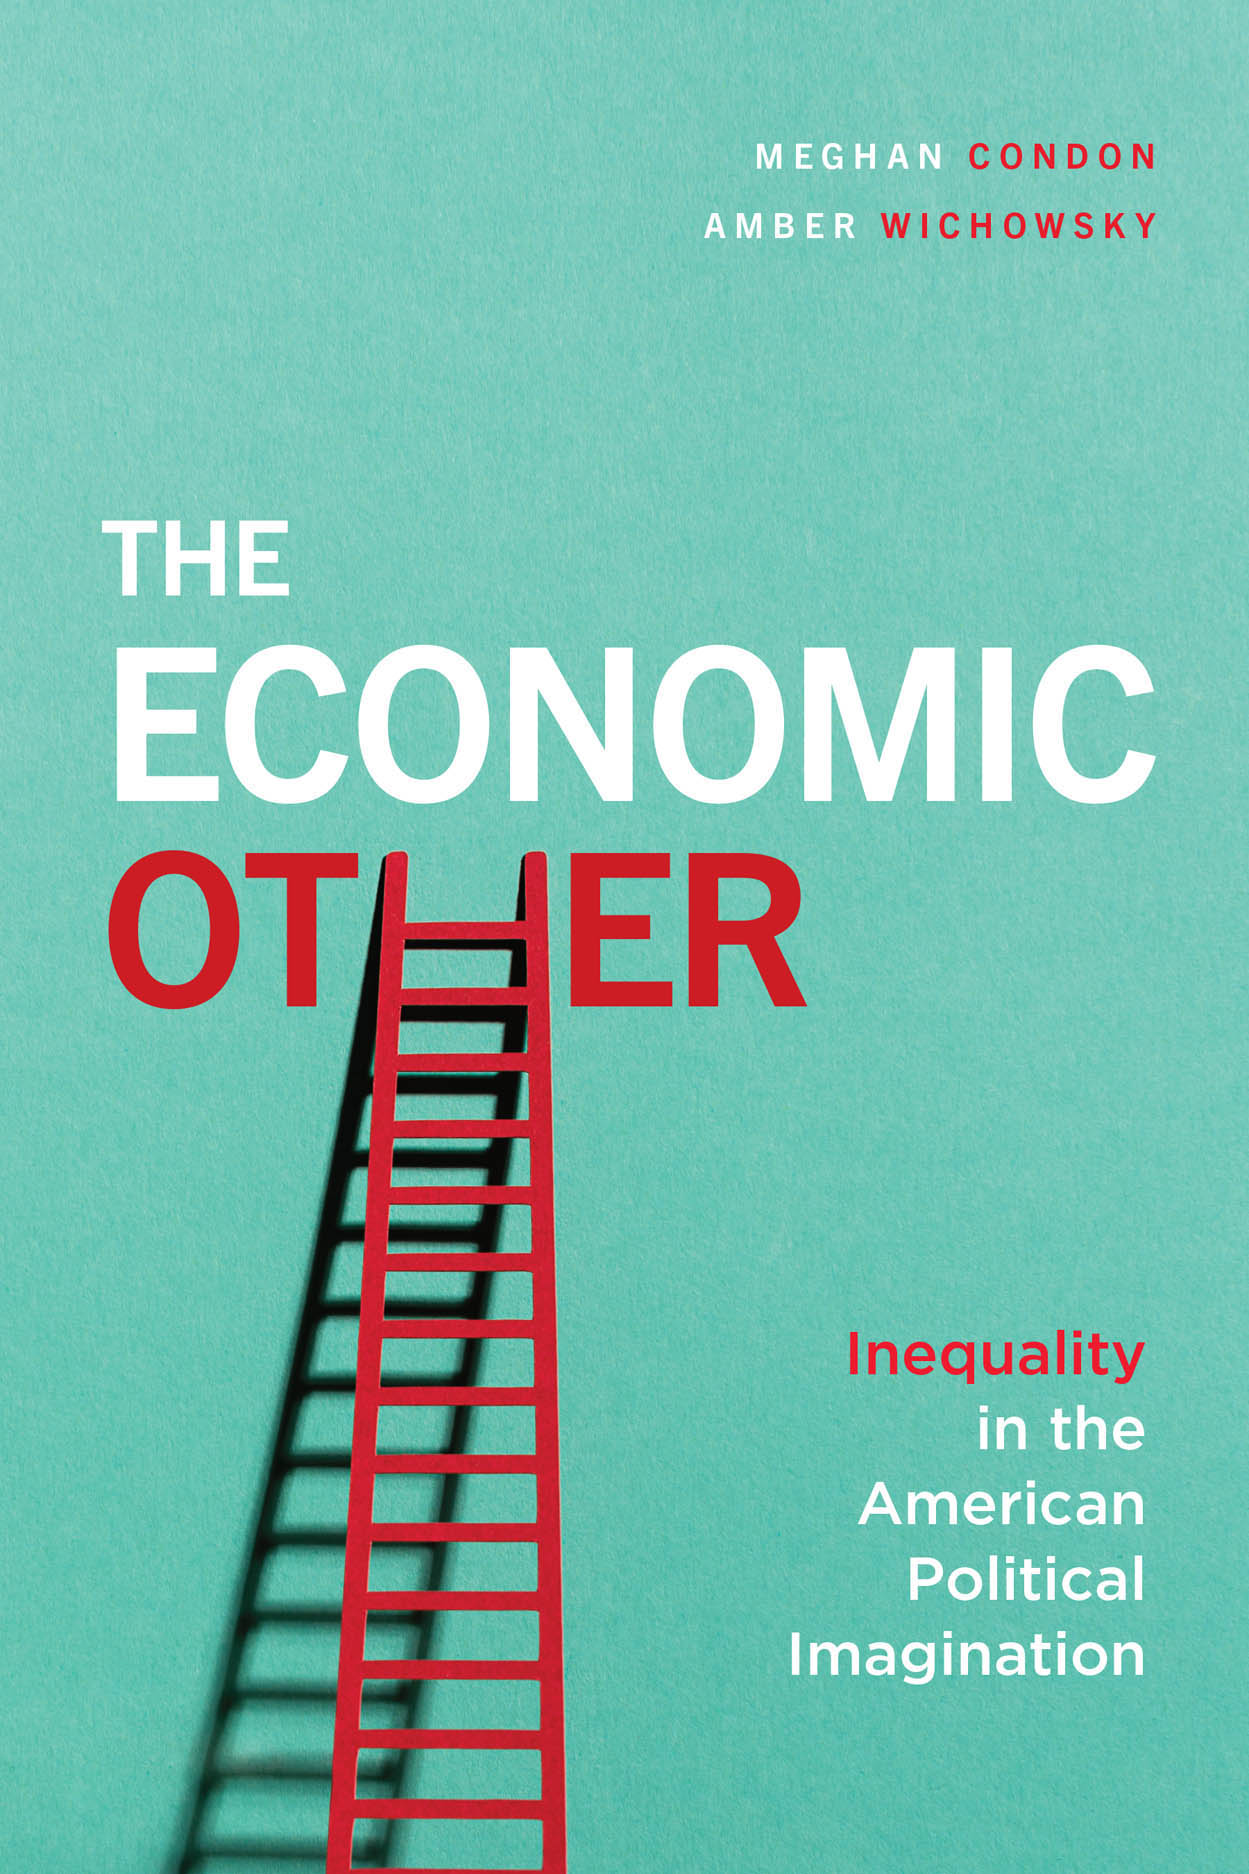 The Economic Other: Inequality in the American Political Imagination